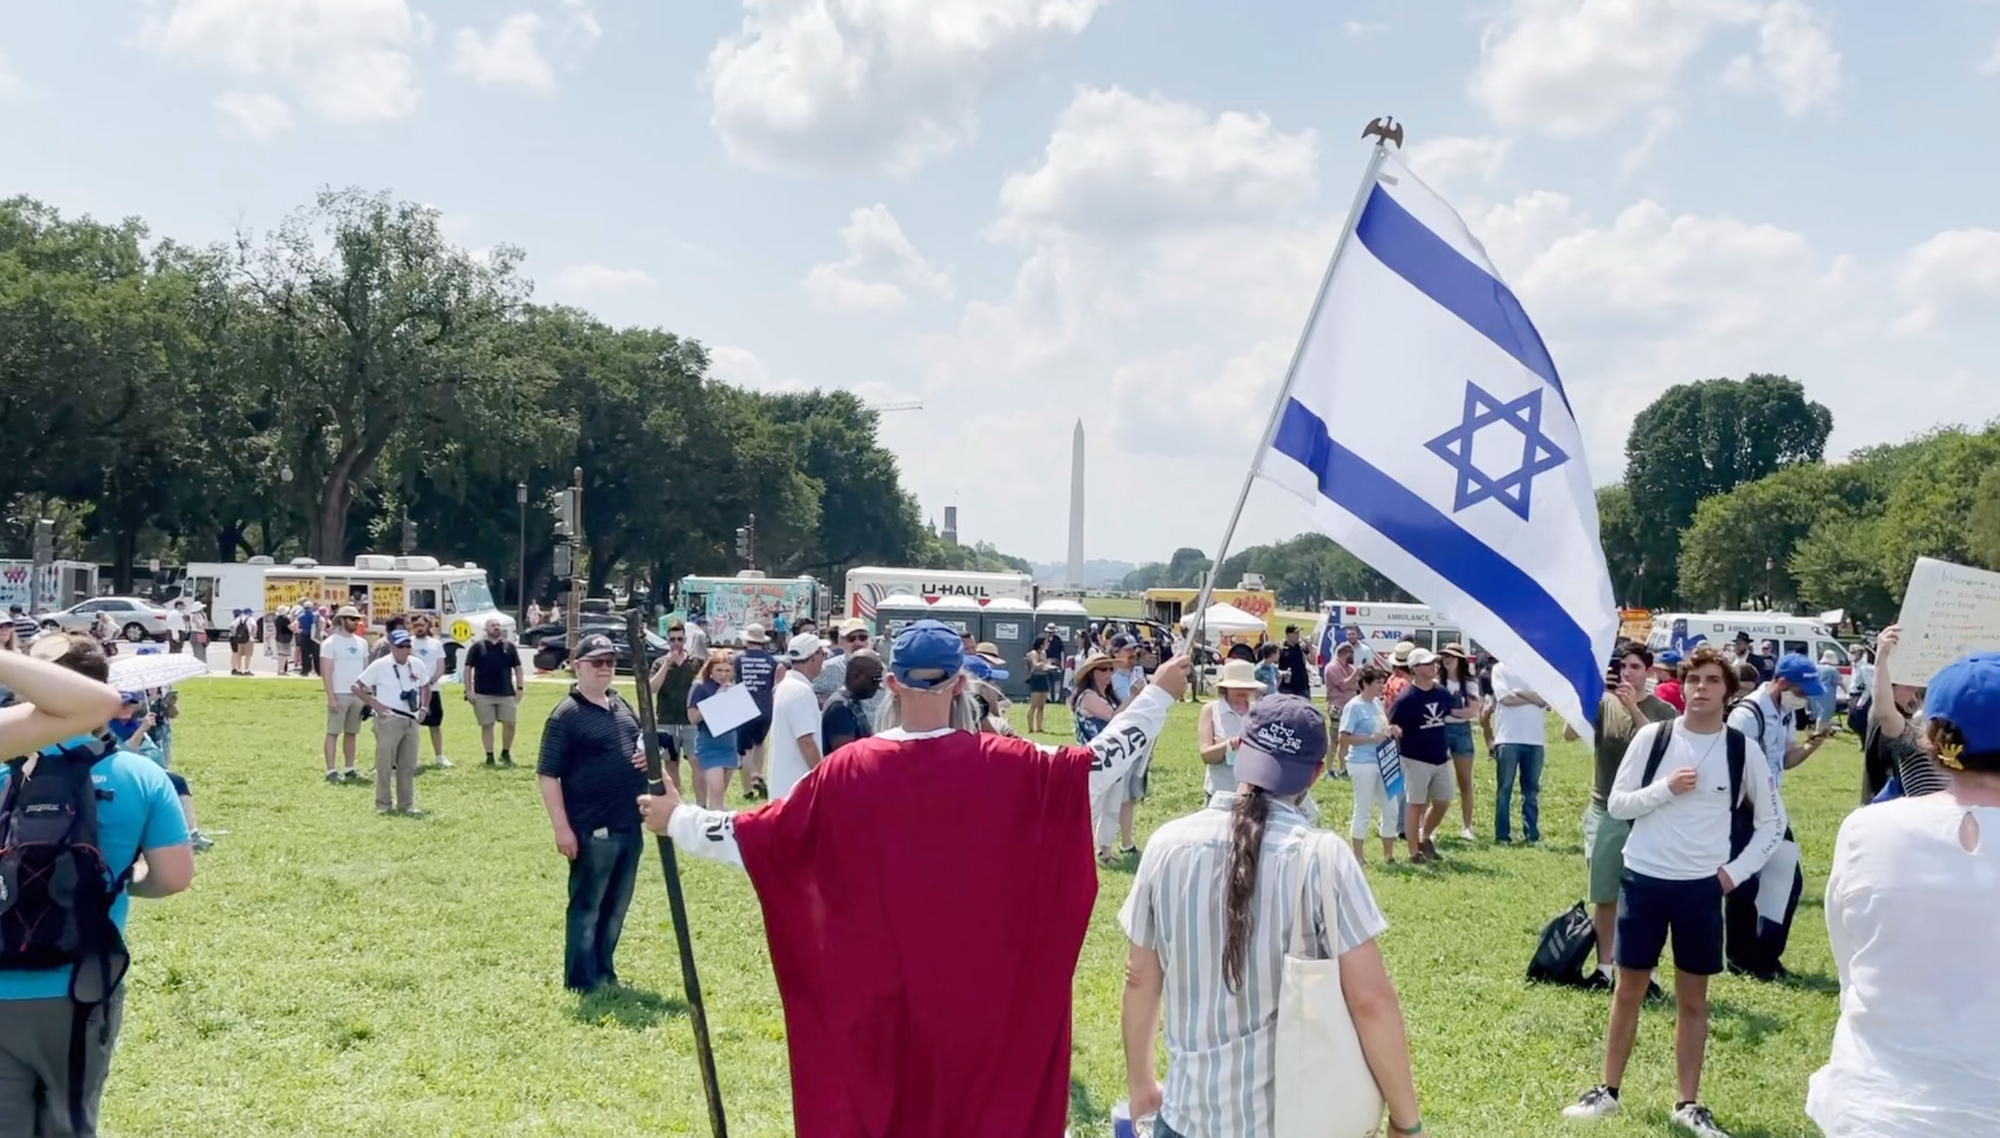 Fighting Anti-Semitism, Splintered: The No Fear Rally